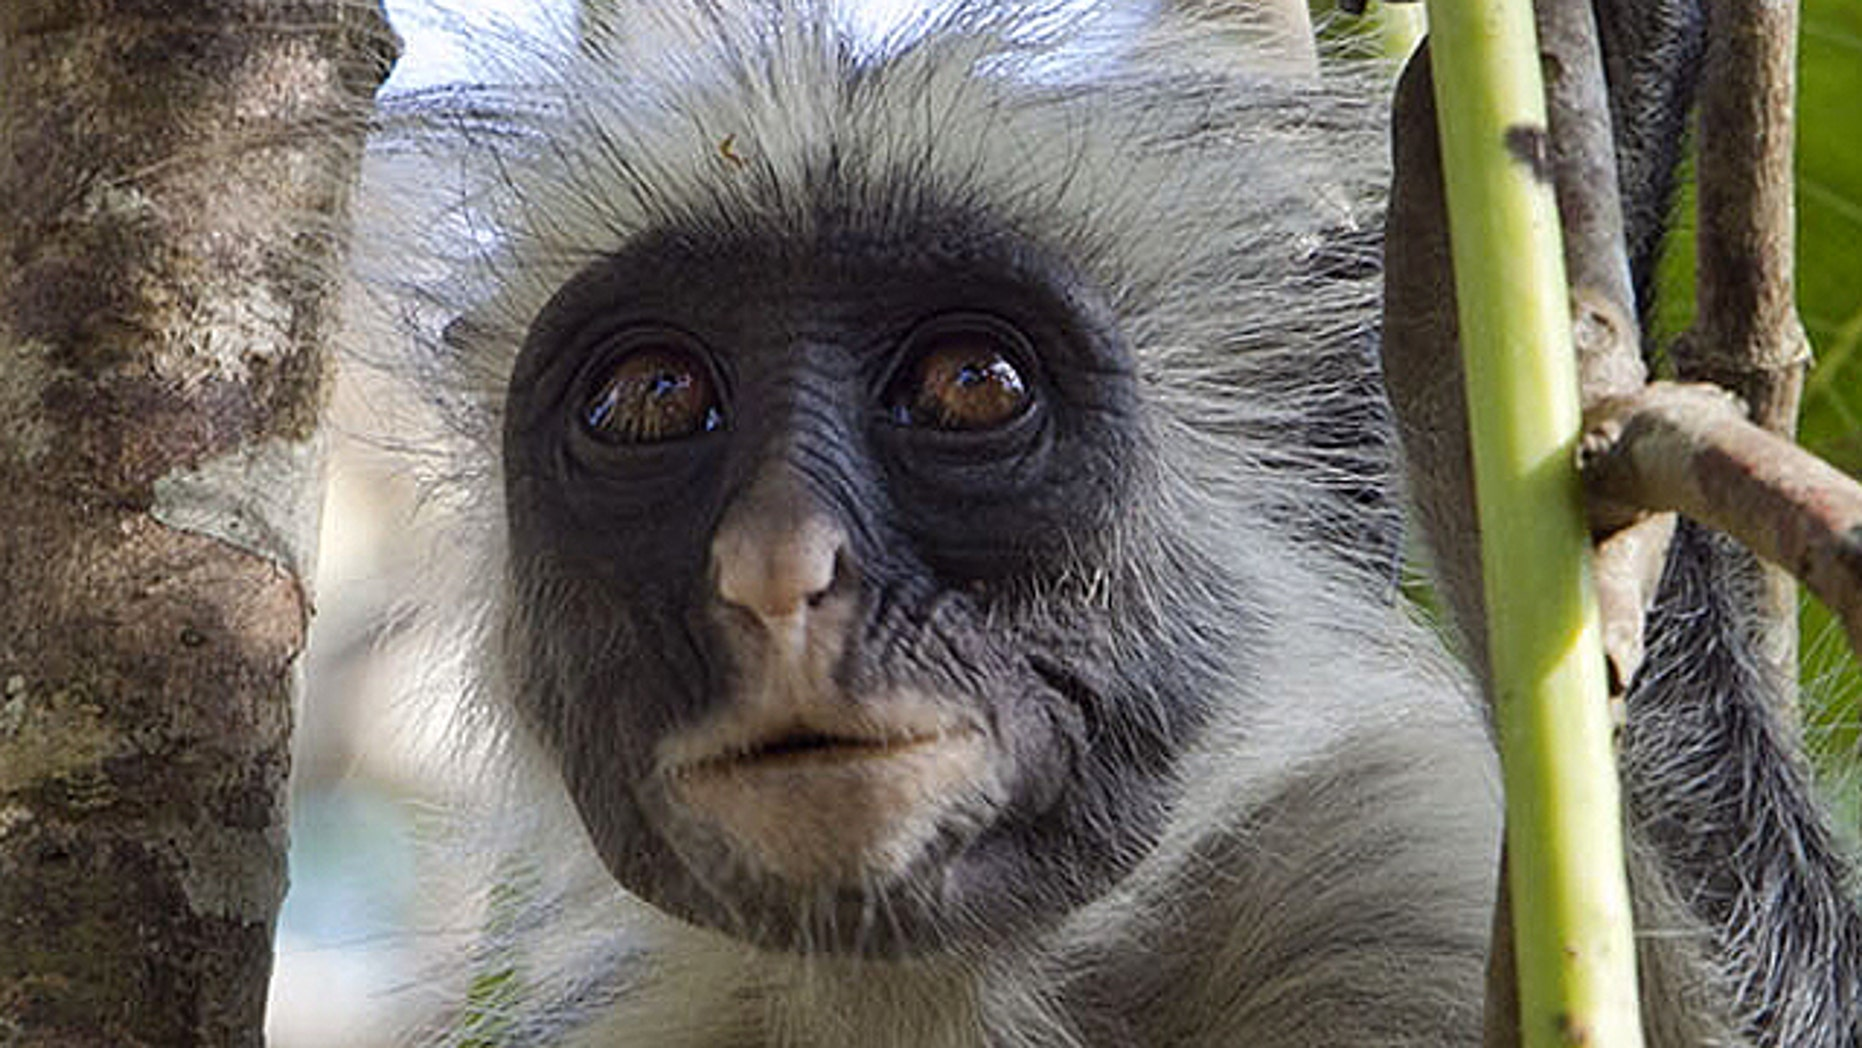 This Oct. 13, 2010 photo shows a rare Zanzibar red colobus monkey as it surveys the landscape while sitting on a tree branch in the East African archipelago of Zanzibar. The leaf-eating primates are popular among tourists flocking to this exotic island.    (AP Photo/Rodrique Ngowi)